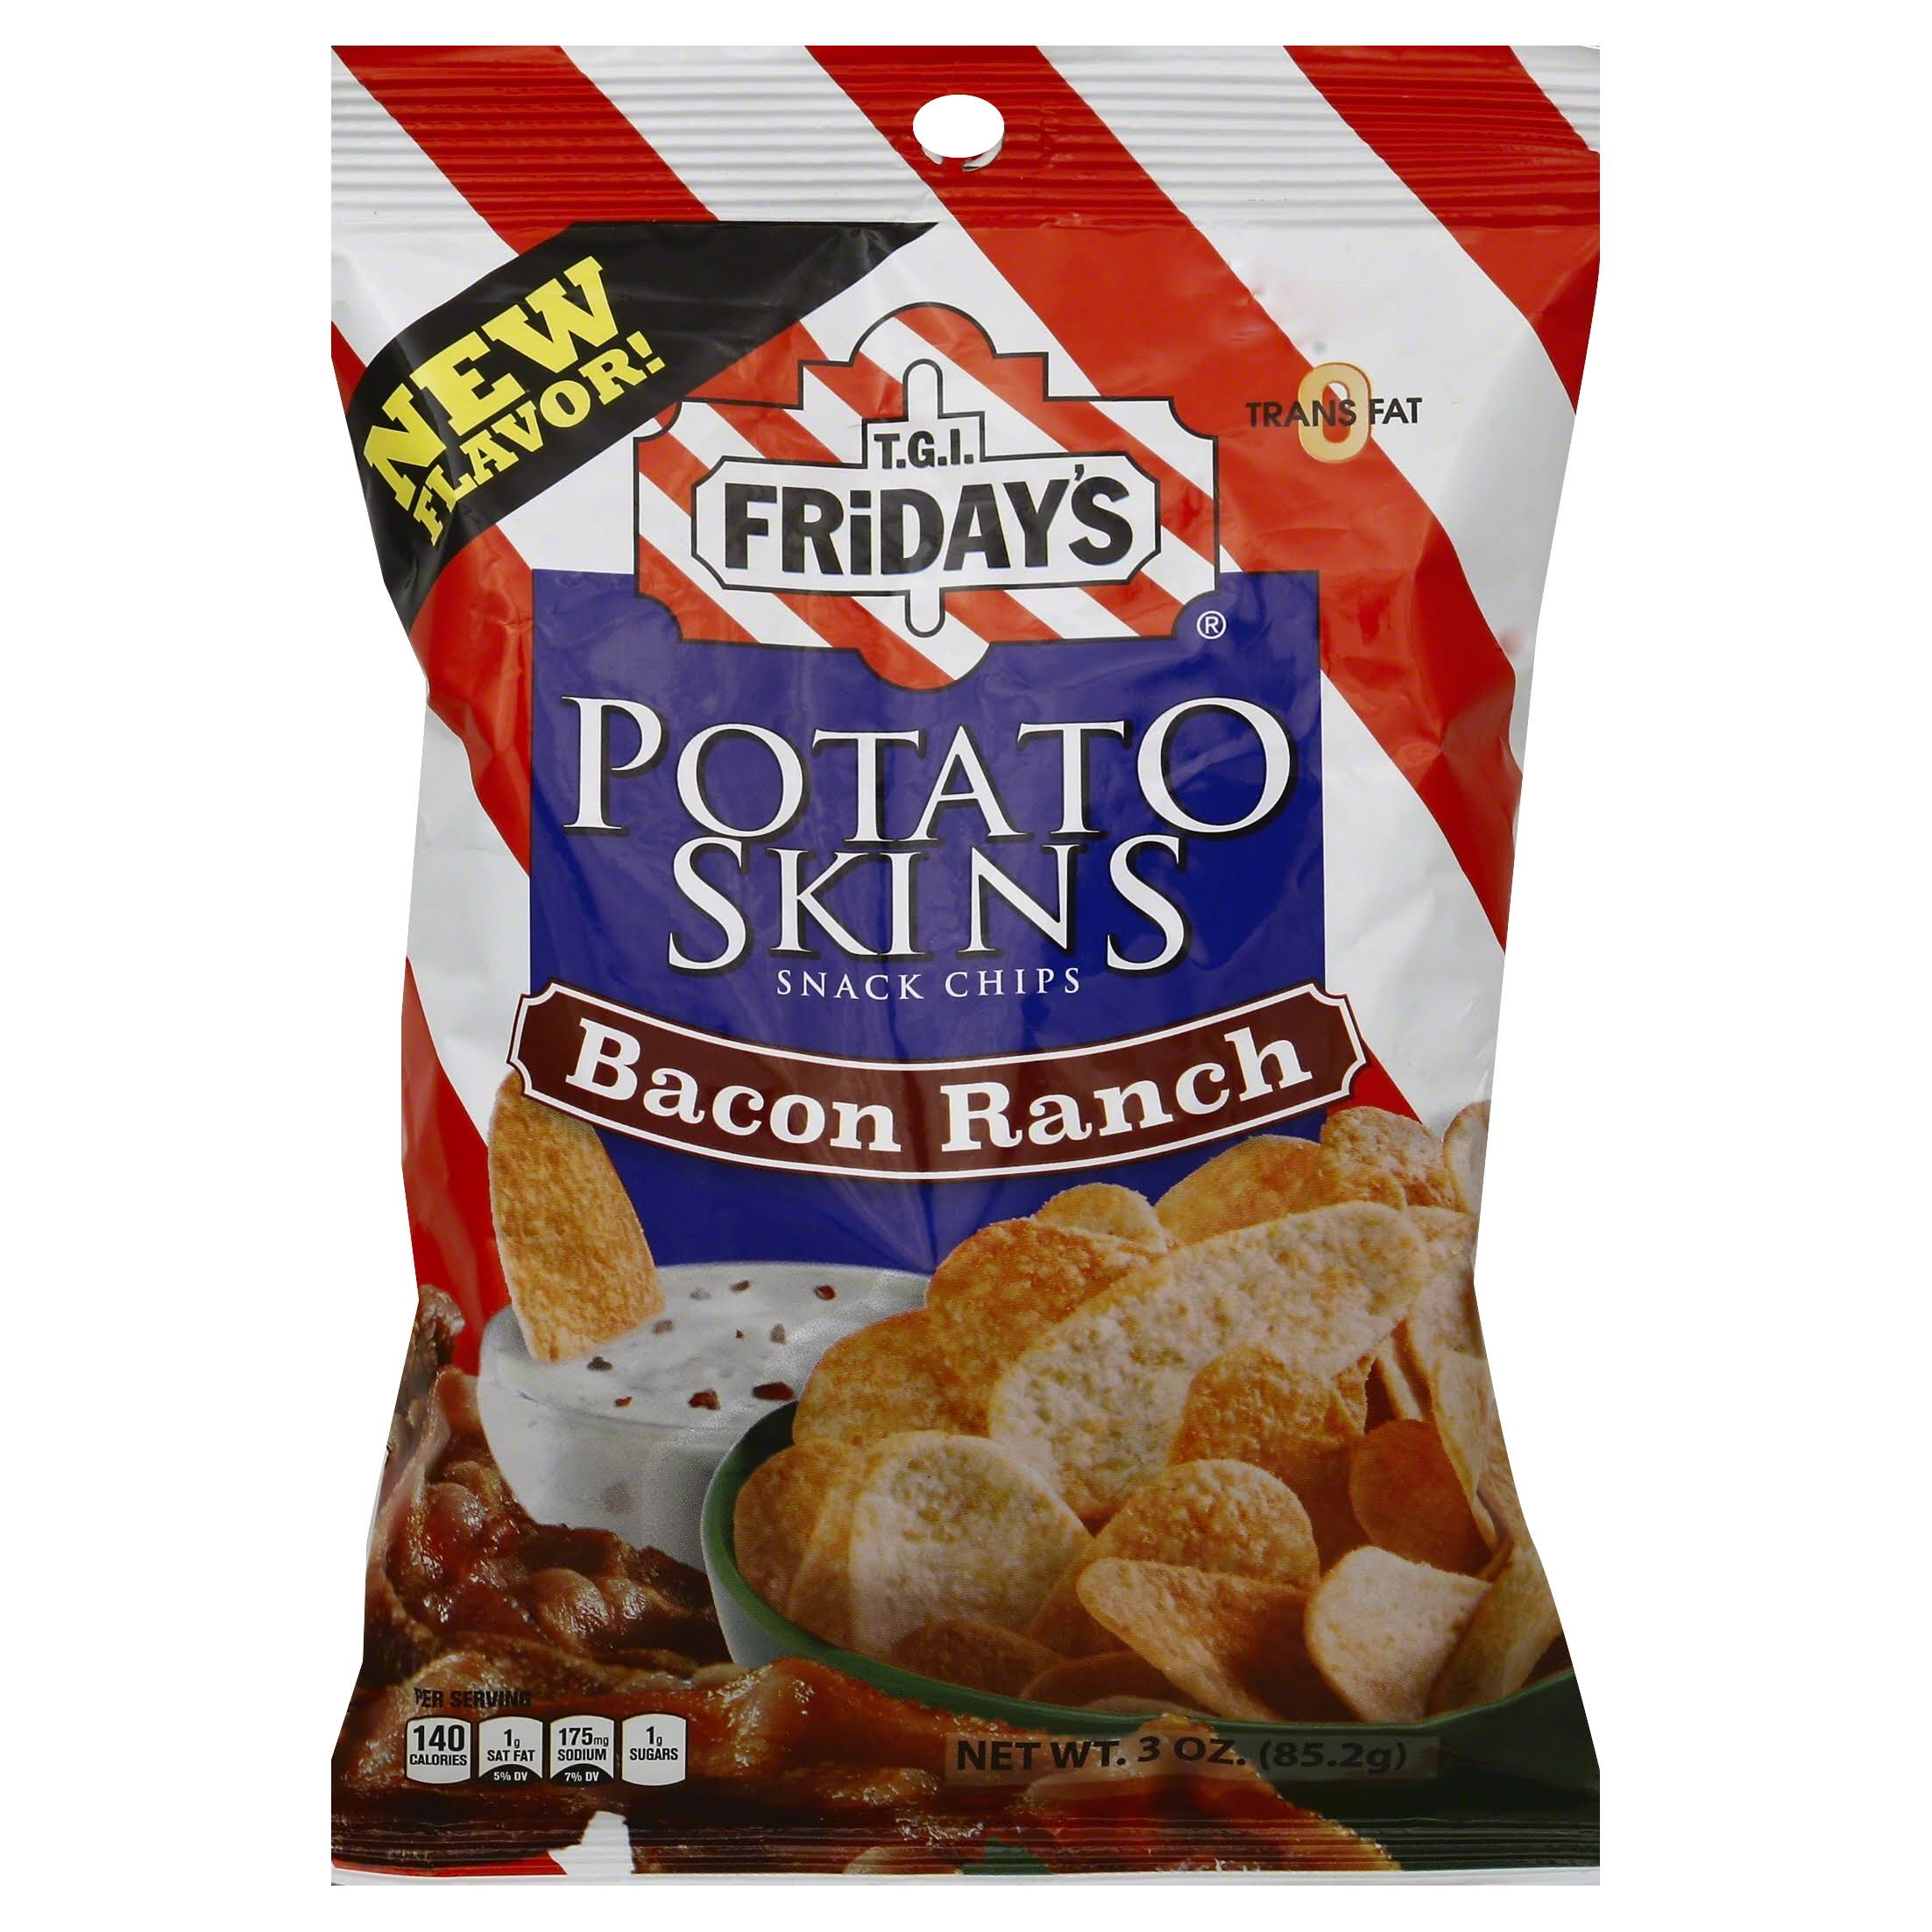 Tgi Fridays Potato Skins Snack Chips - Bacon Ranch, 3oz